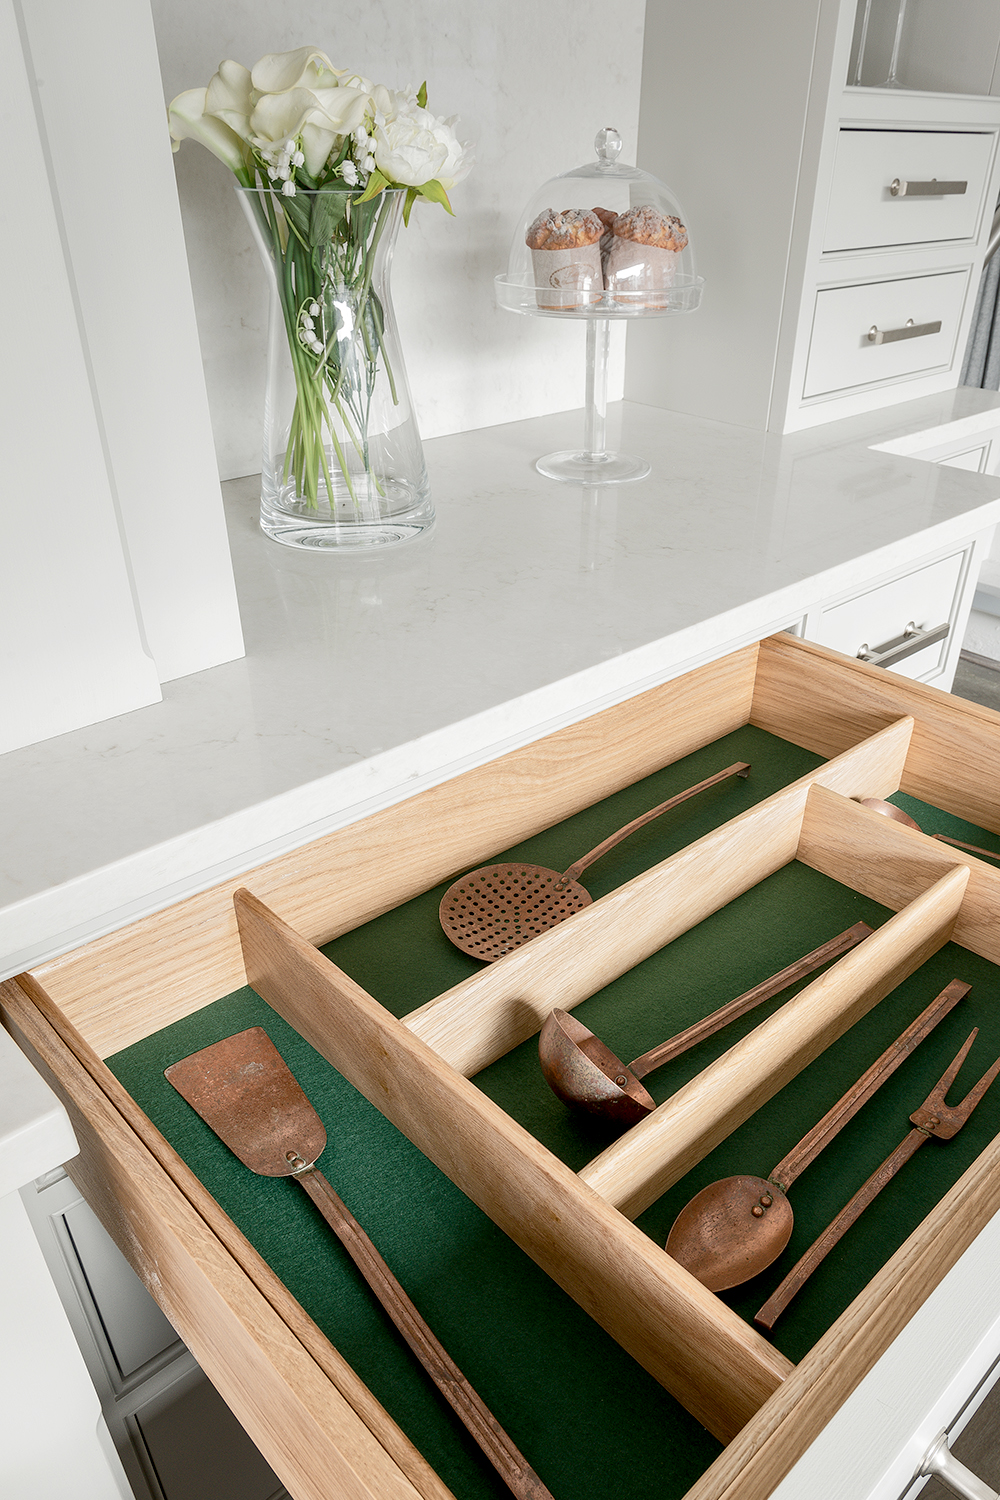 Open grey cutlery drawer in solid oak with green lining and vintage utensils on display with Caesarstone London Grey worktop and cabinets painted grey and stainless steel handle.